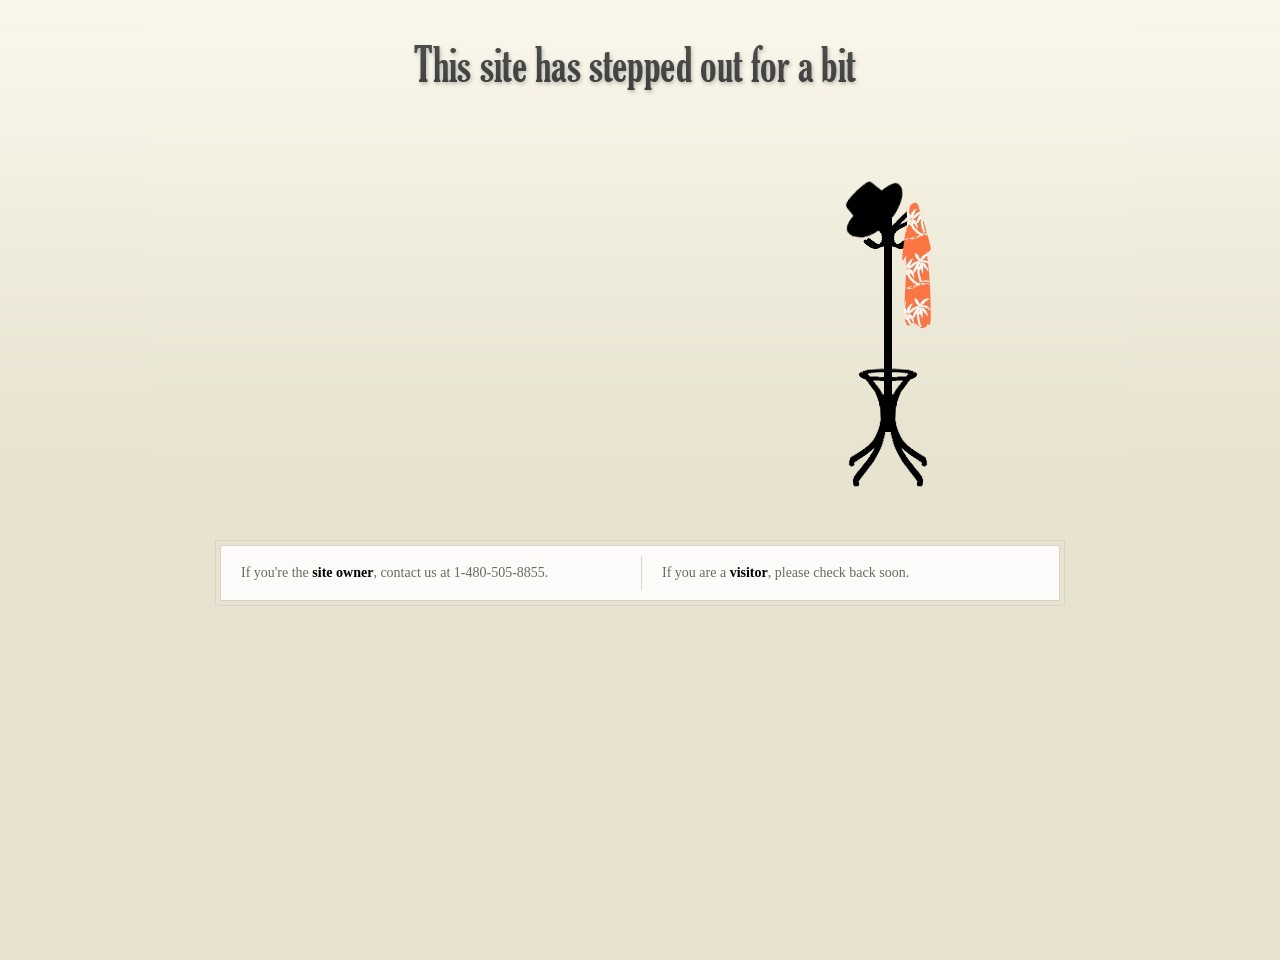 Karen Hornbostel Time Trial Series moved to Fall: Good News, Cherry Creek Park Resurfacing Roads